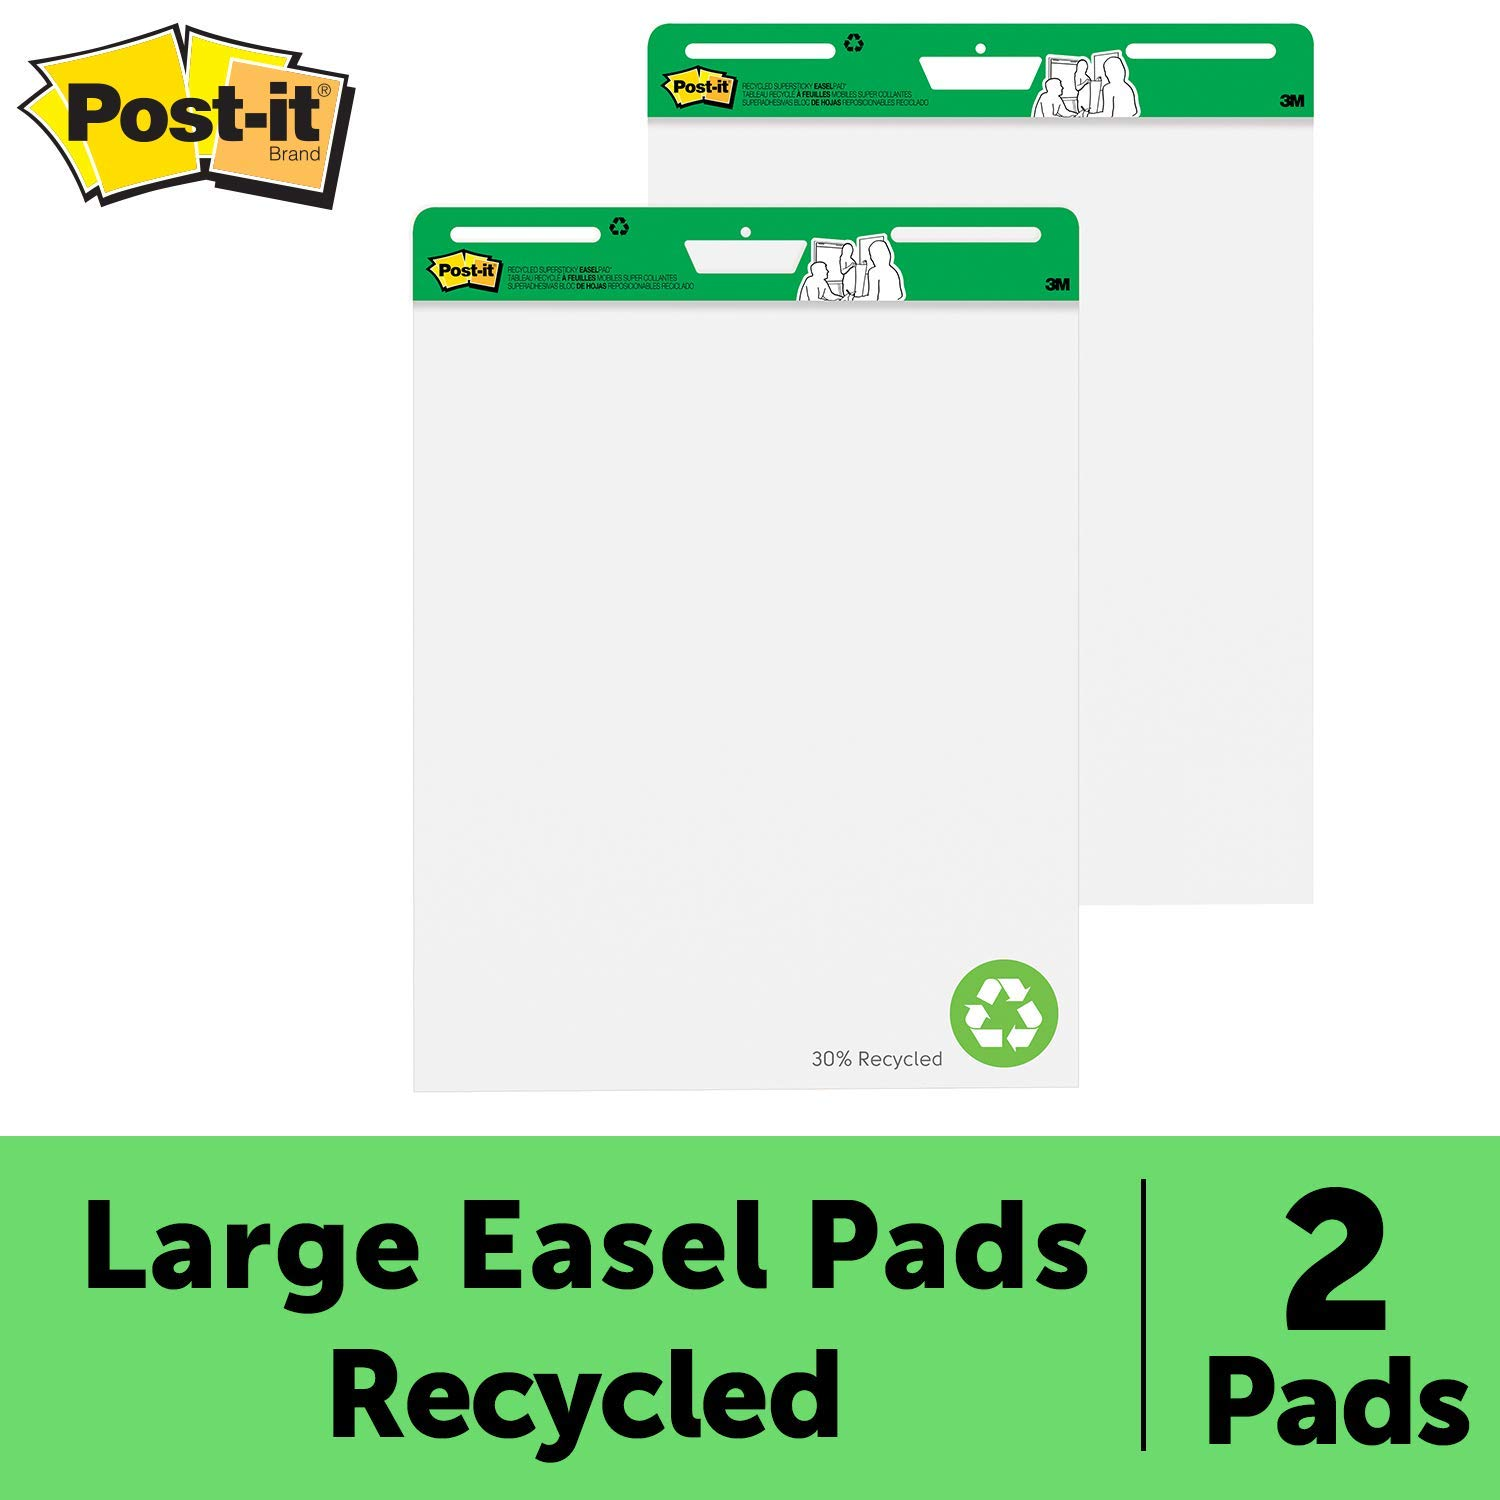 Post-it Super Sticky Easel Pad, 25 x 30 Inches, 30 Sheets/Pad, 2 Pads (559RP), Large White Recycled Premium Self Stick Flip Chart Paper, Super Sticking Power